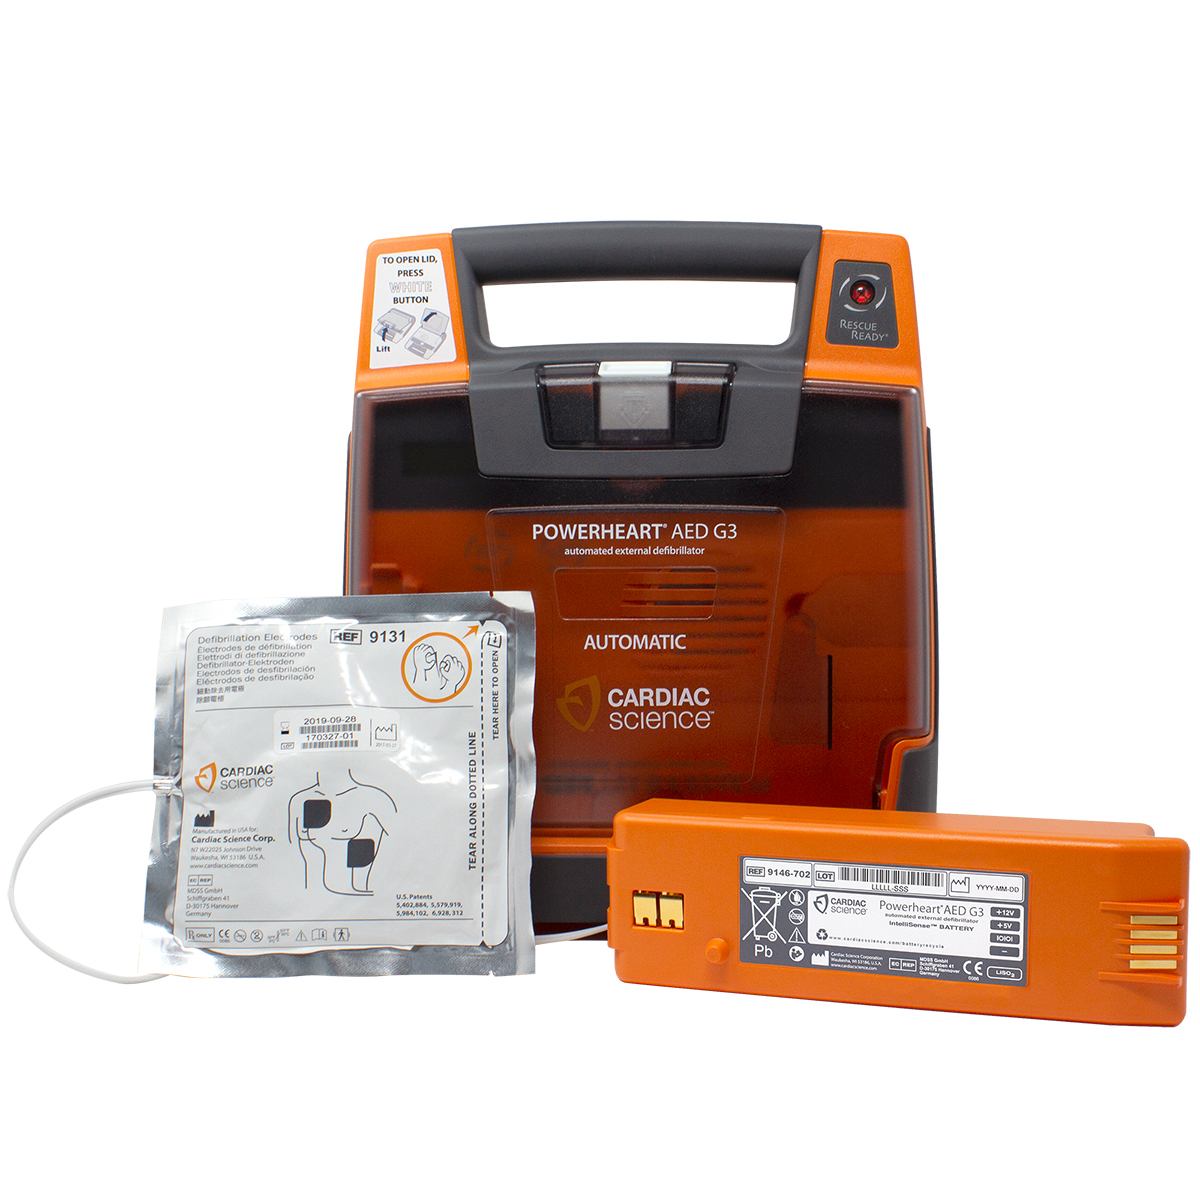 Cardiac Science™ PowerHeart® G3 Elite Fully Automatic Defibrillator